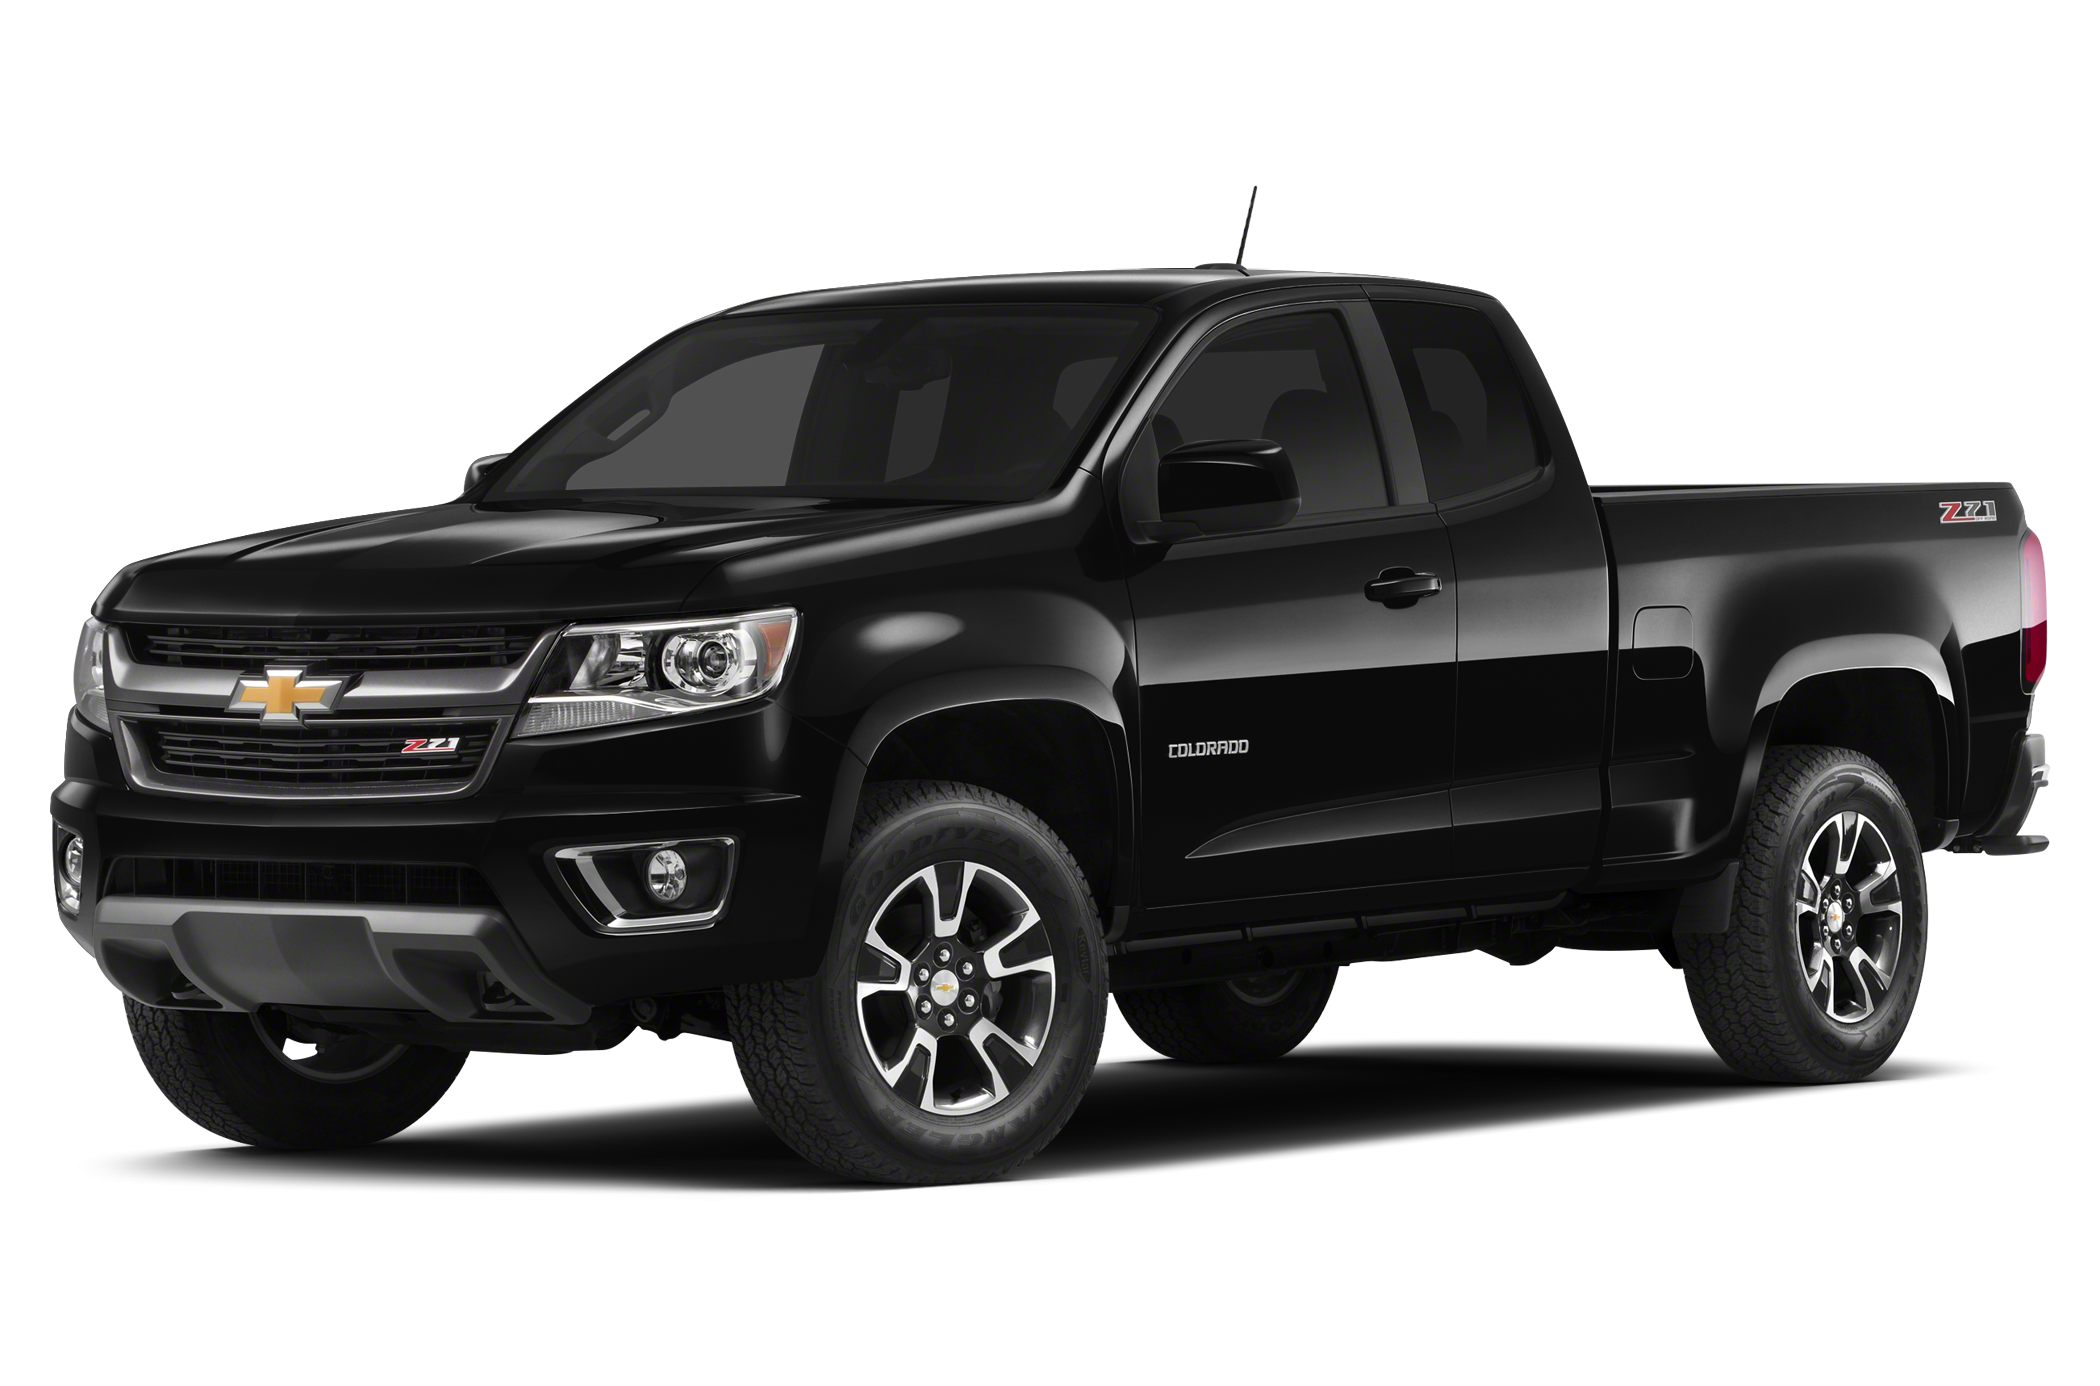 2015 Chevrolet Colorado Z71 Crew Cab Pickup for sale in Bloomer for $35,240 with 0 miles